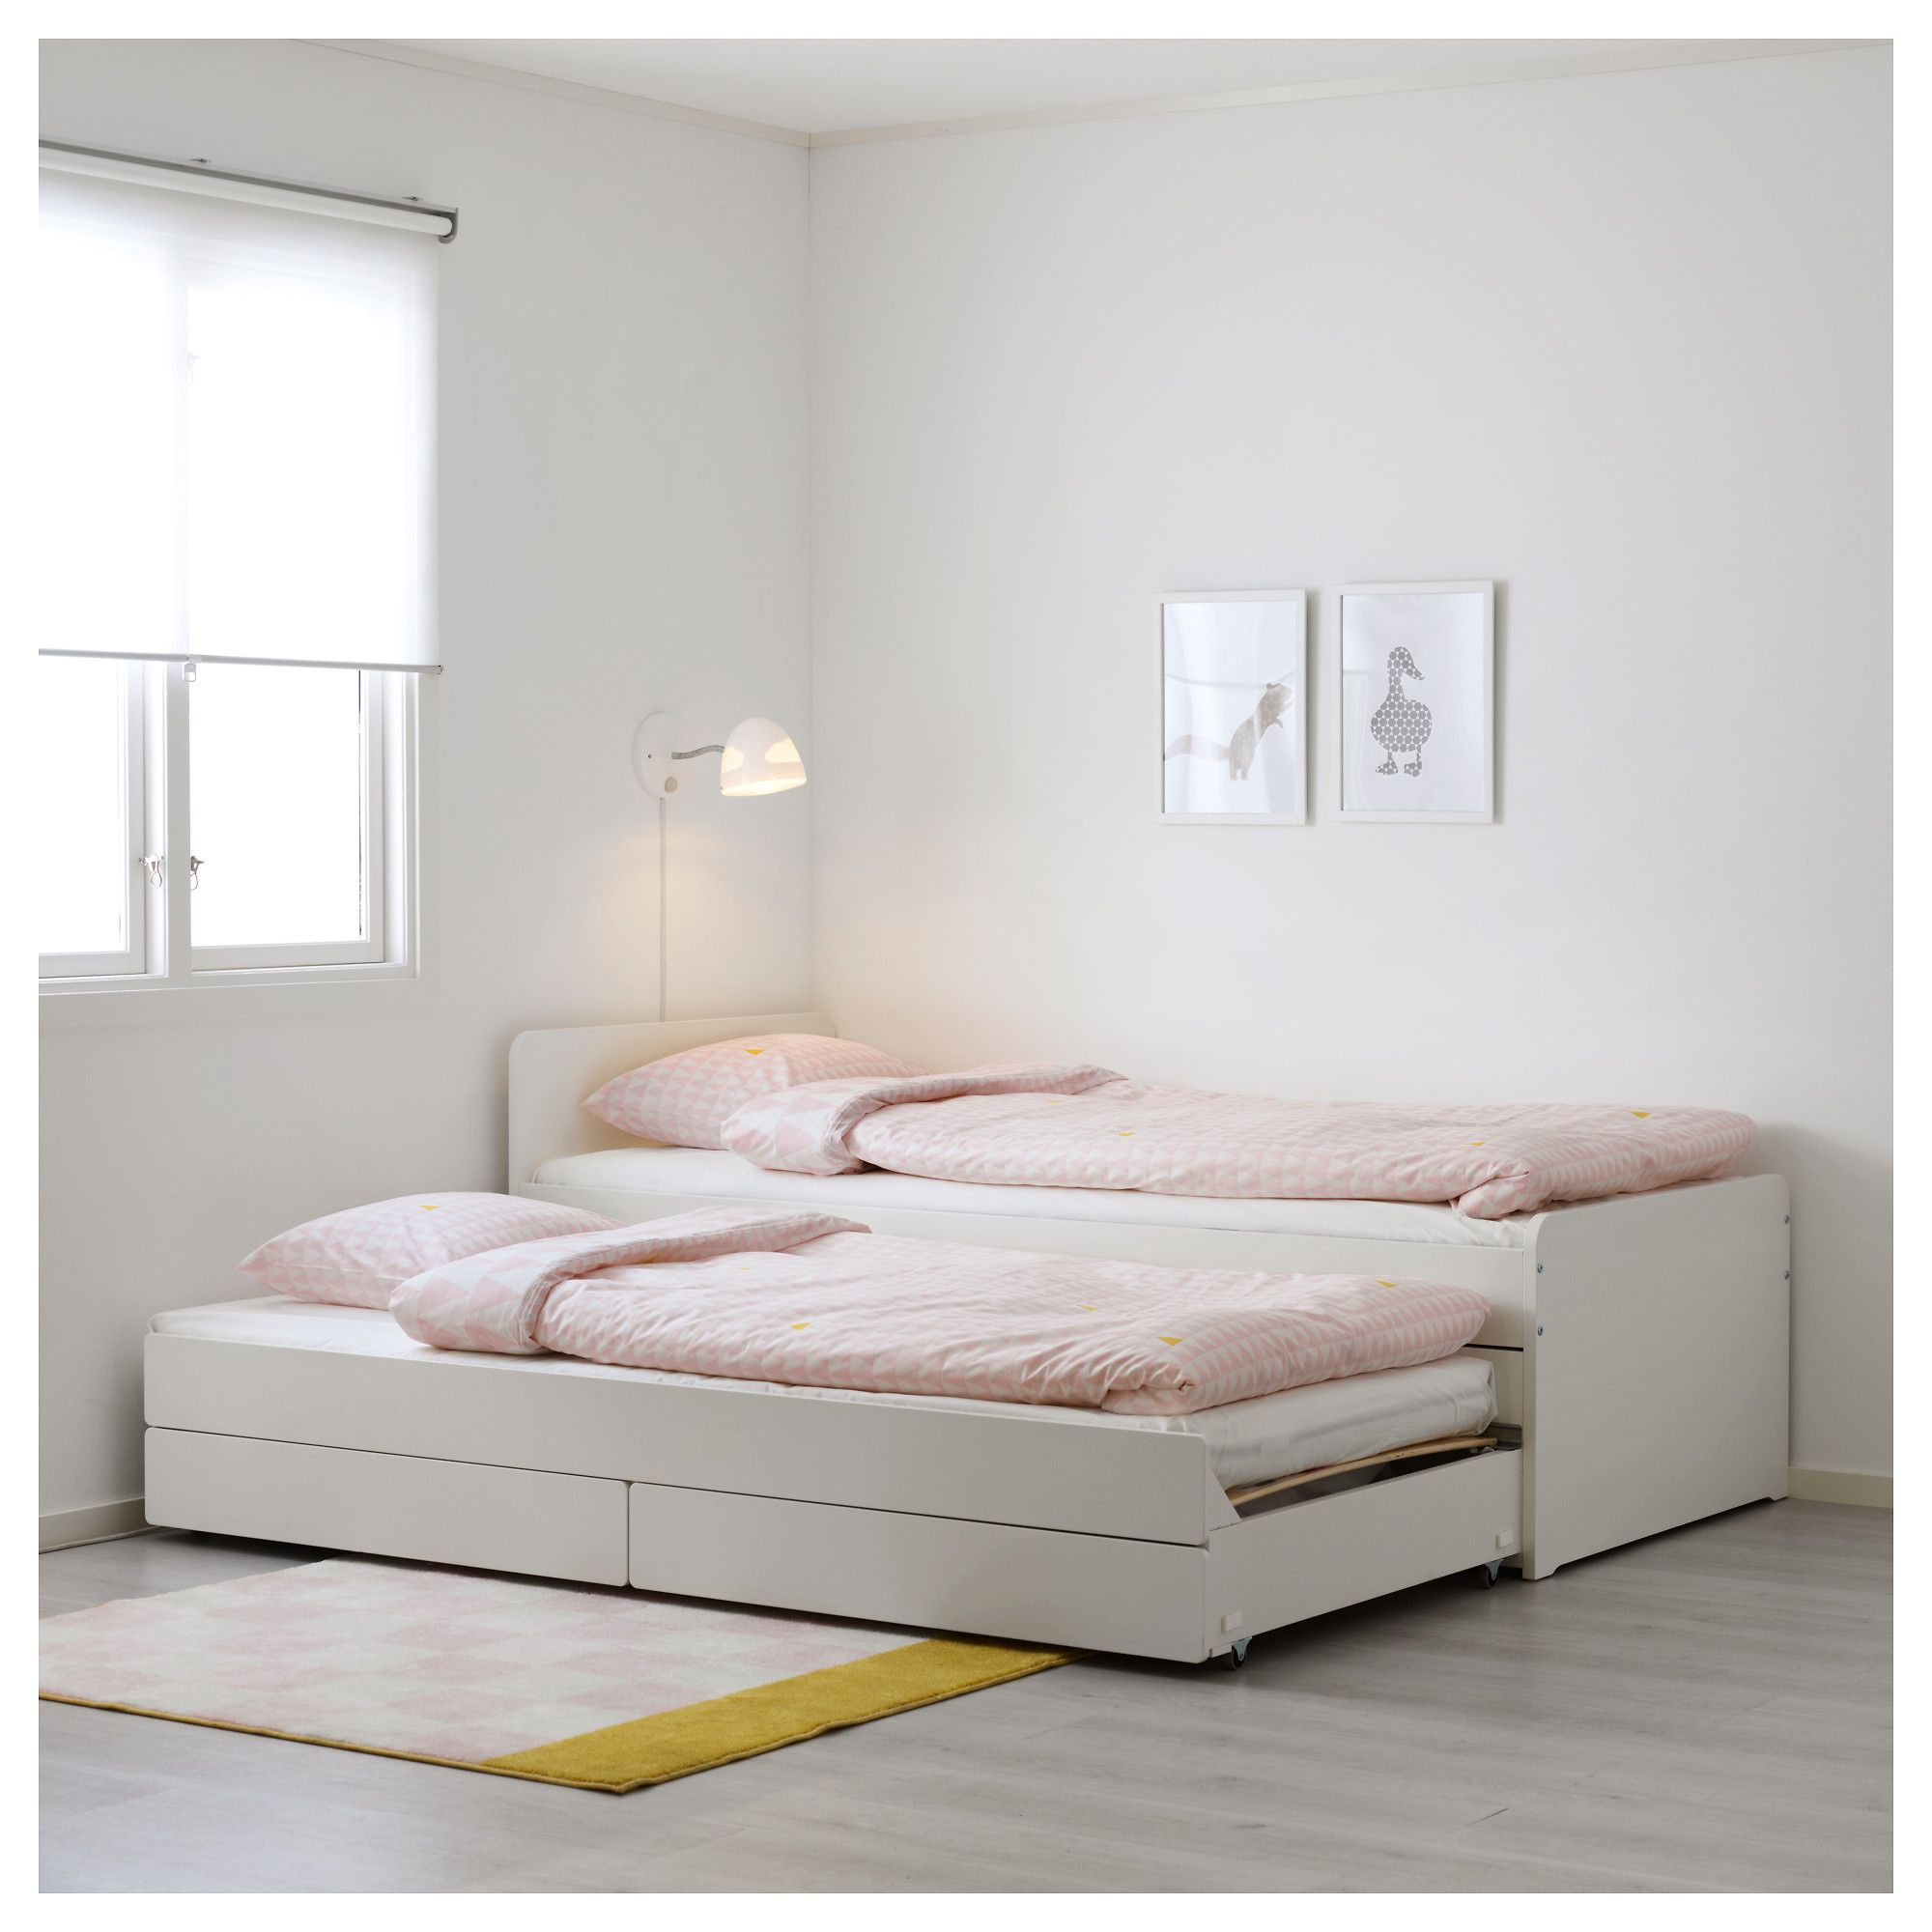 SlÄkt Bed Frame W Pull Out Storage White